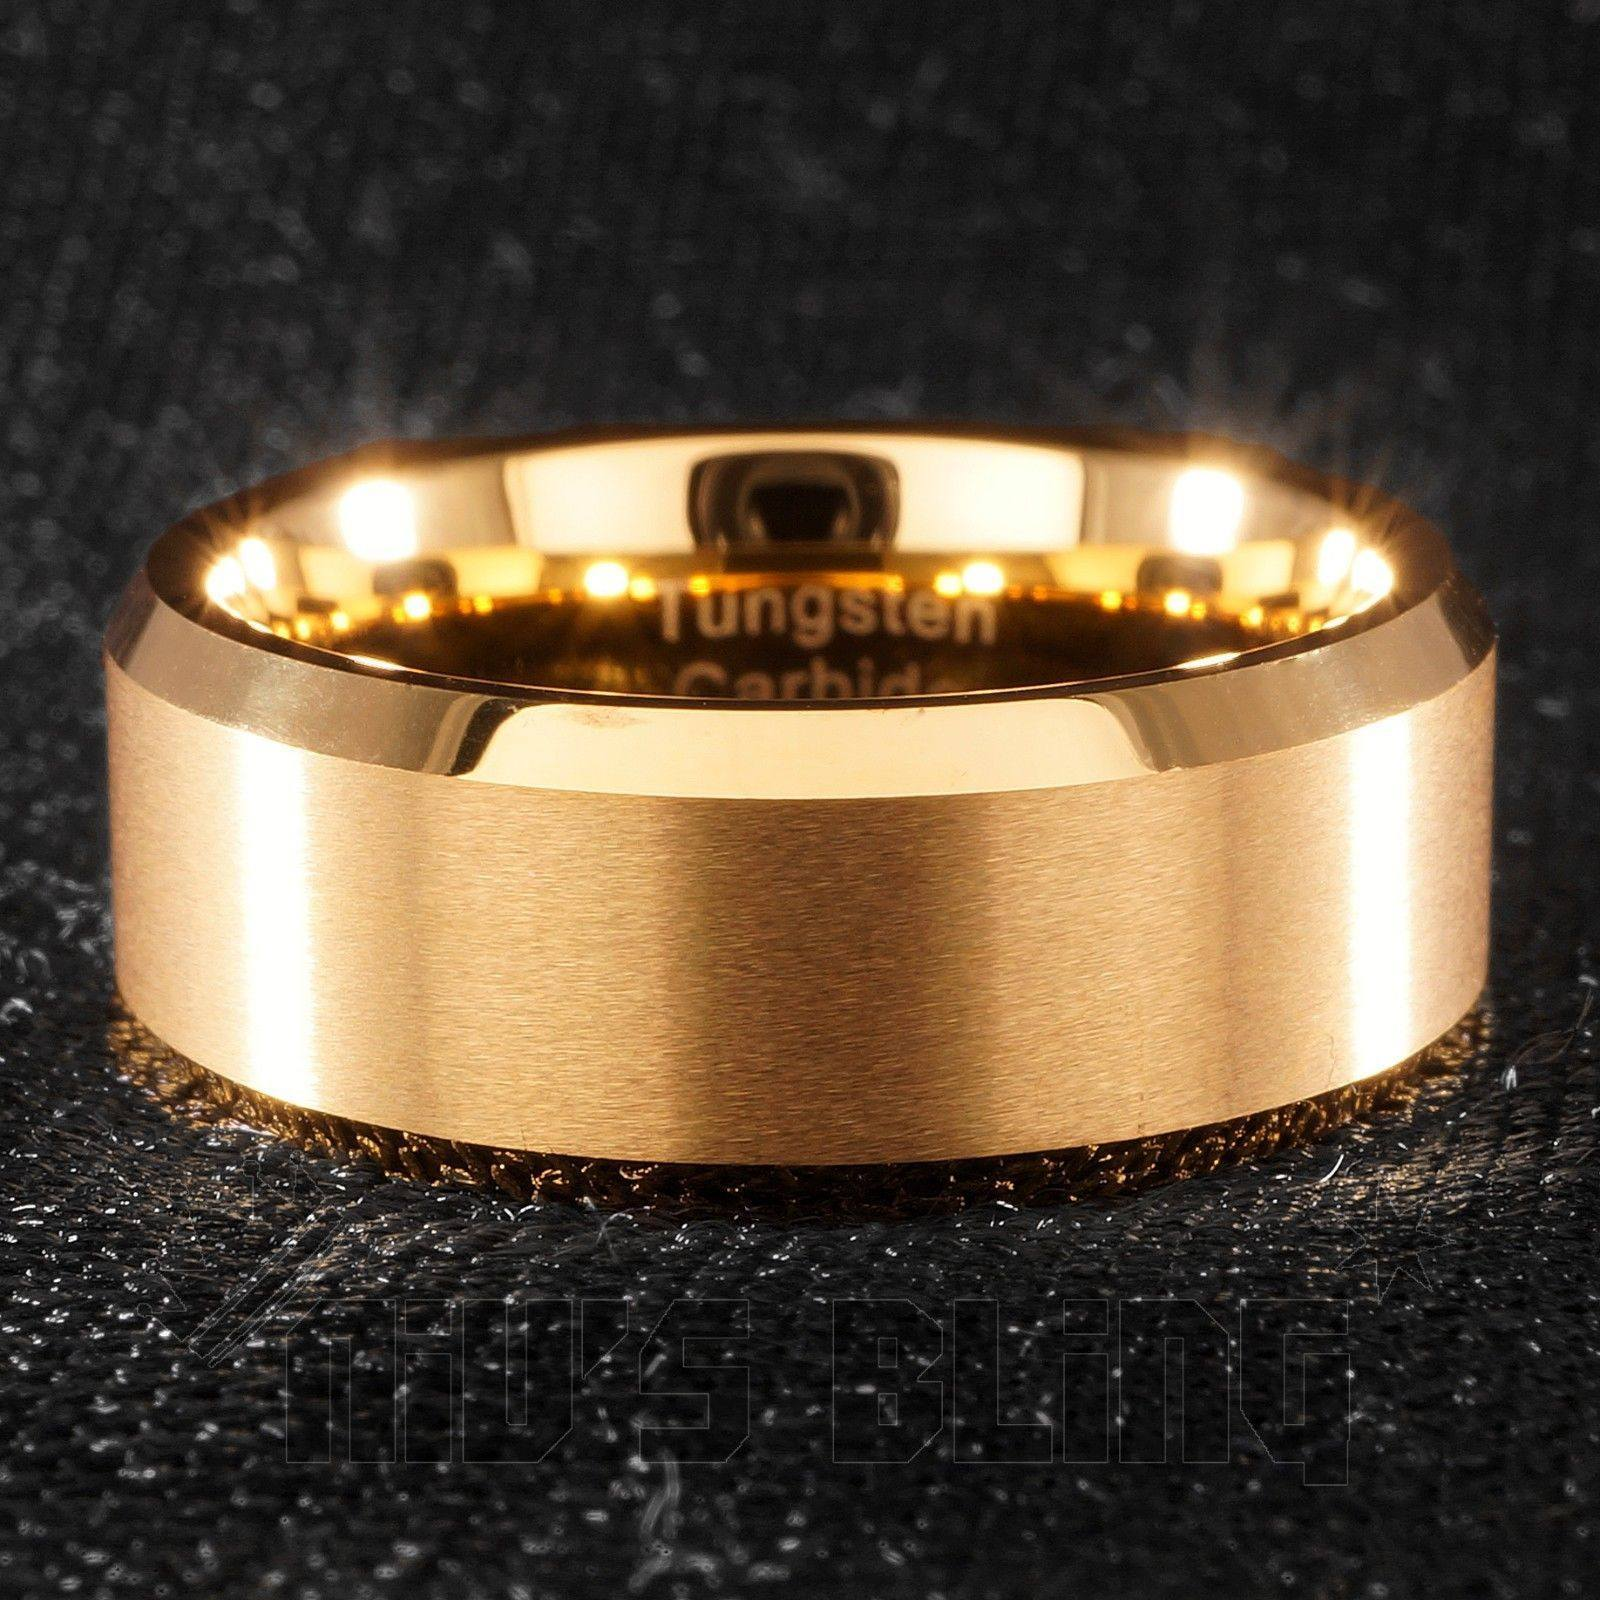 Affordable 18K Gold Tungsten Carbide Ring 8MM - Front View